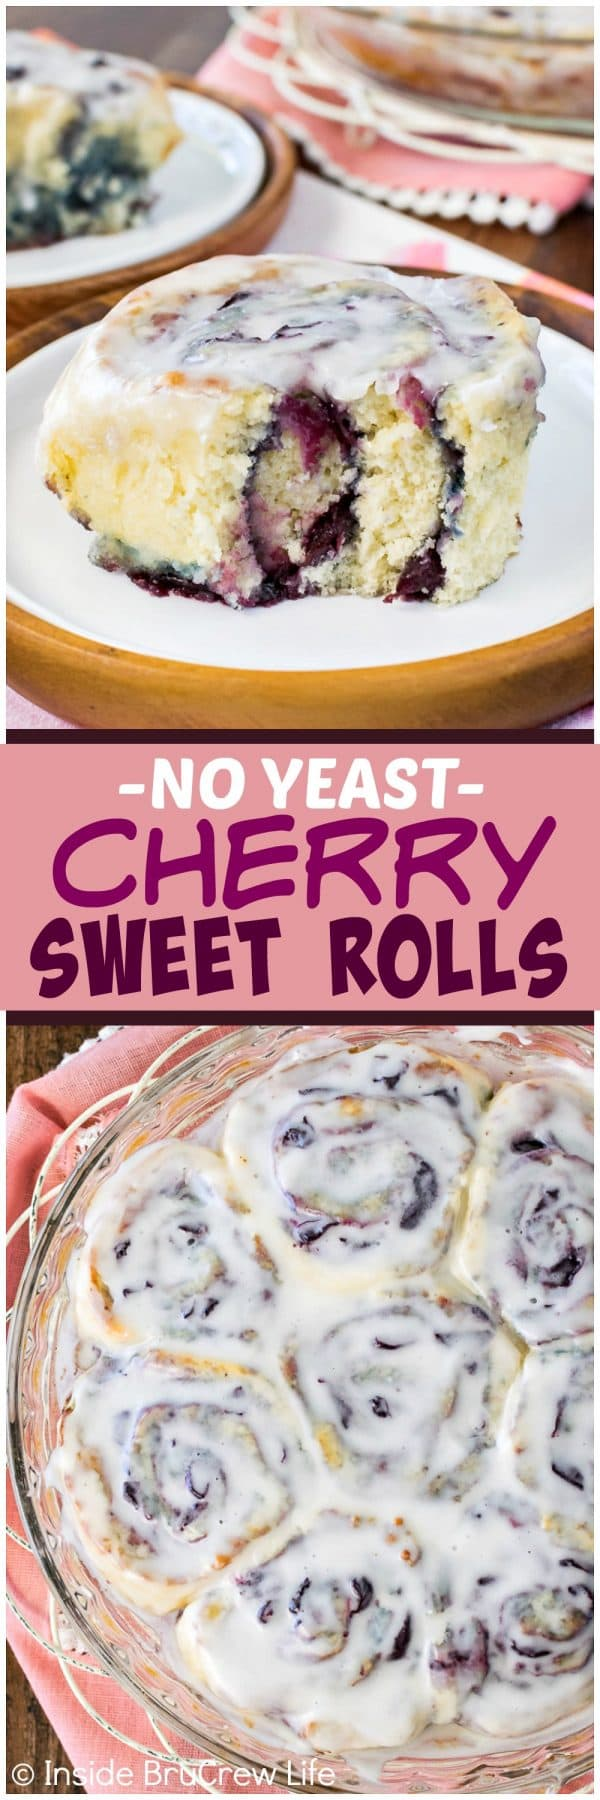 Cherry Sweet Rolls - this no yeast dough is filled with homemade cherry preserves and drizzled with almond glaze. Awesome and easy breakfast recipe for summer mornings!